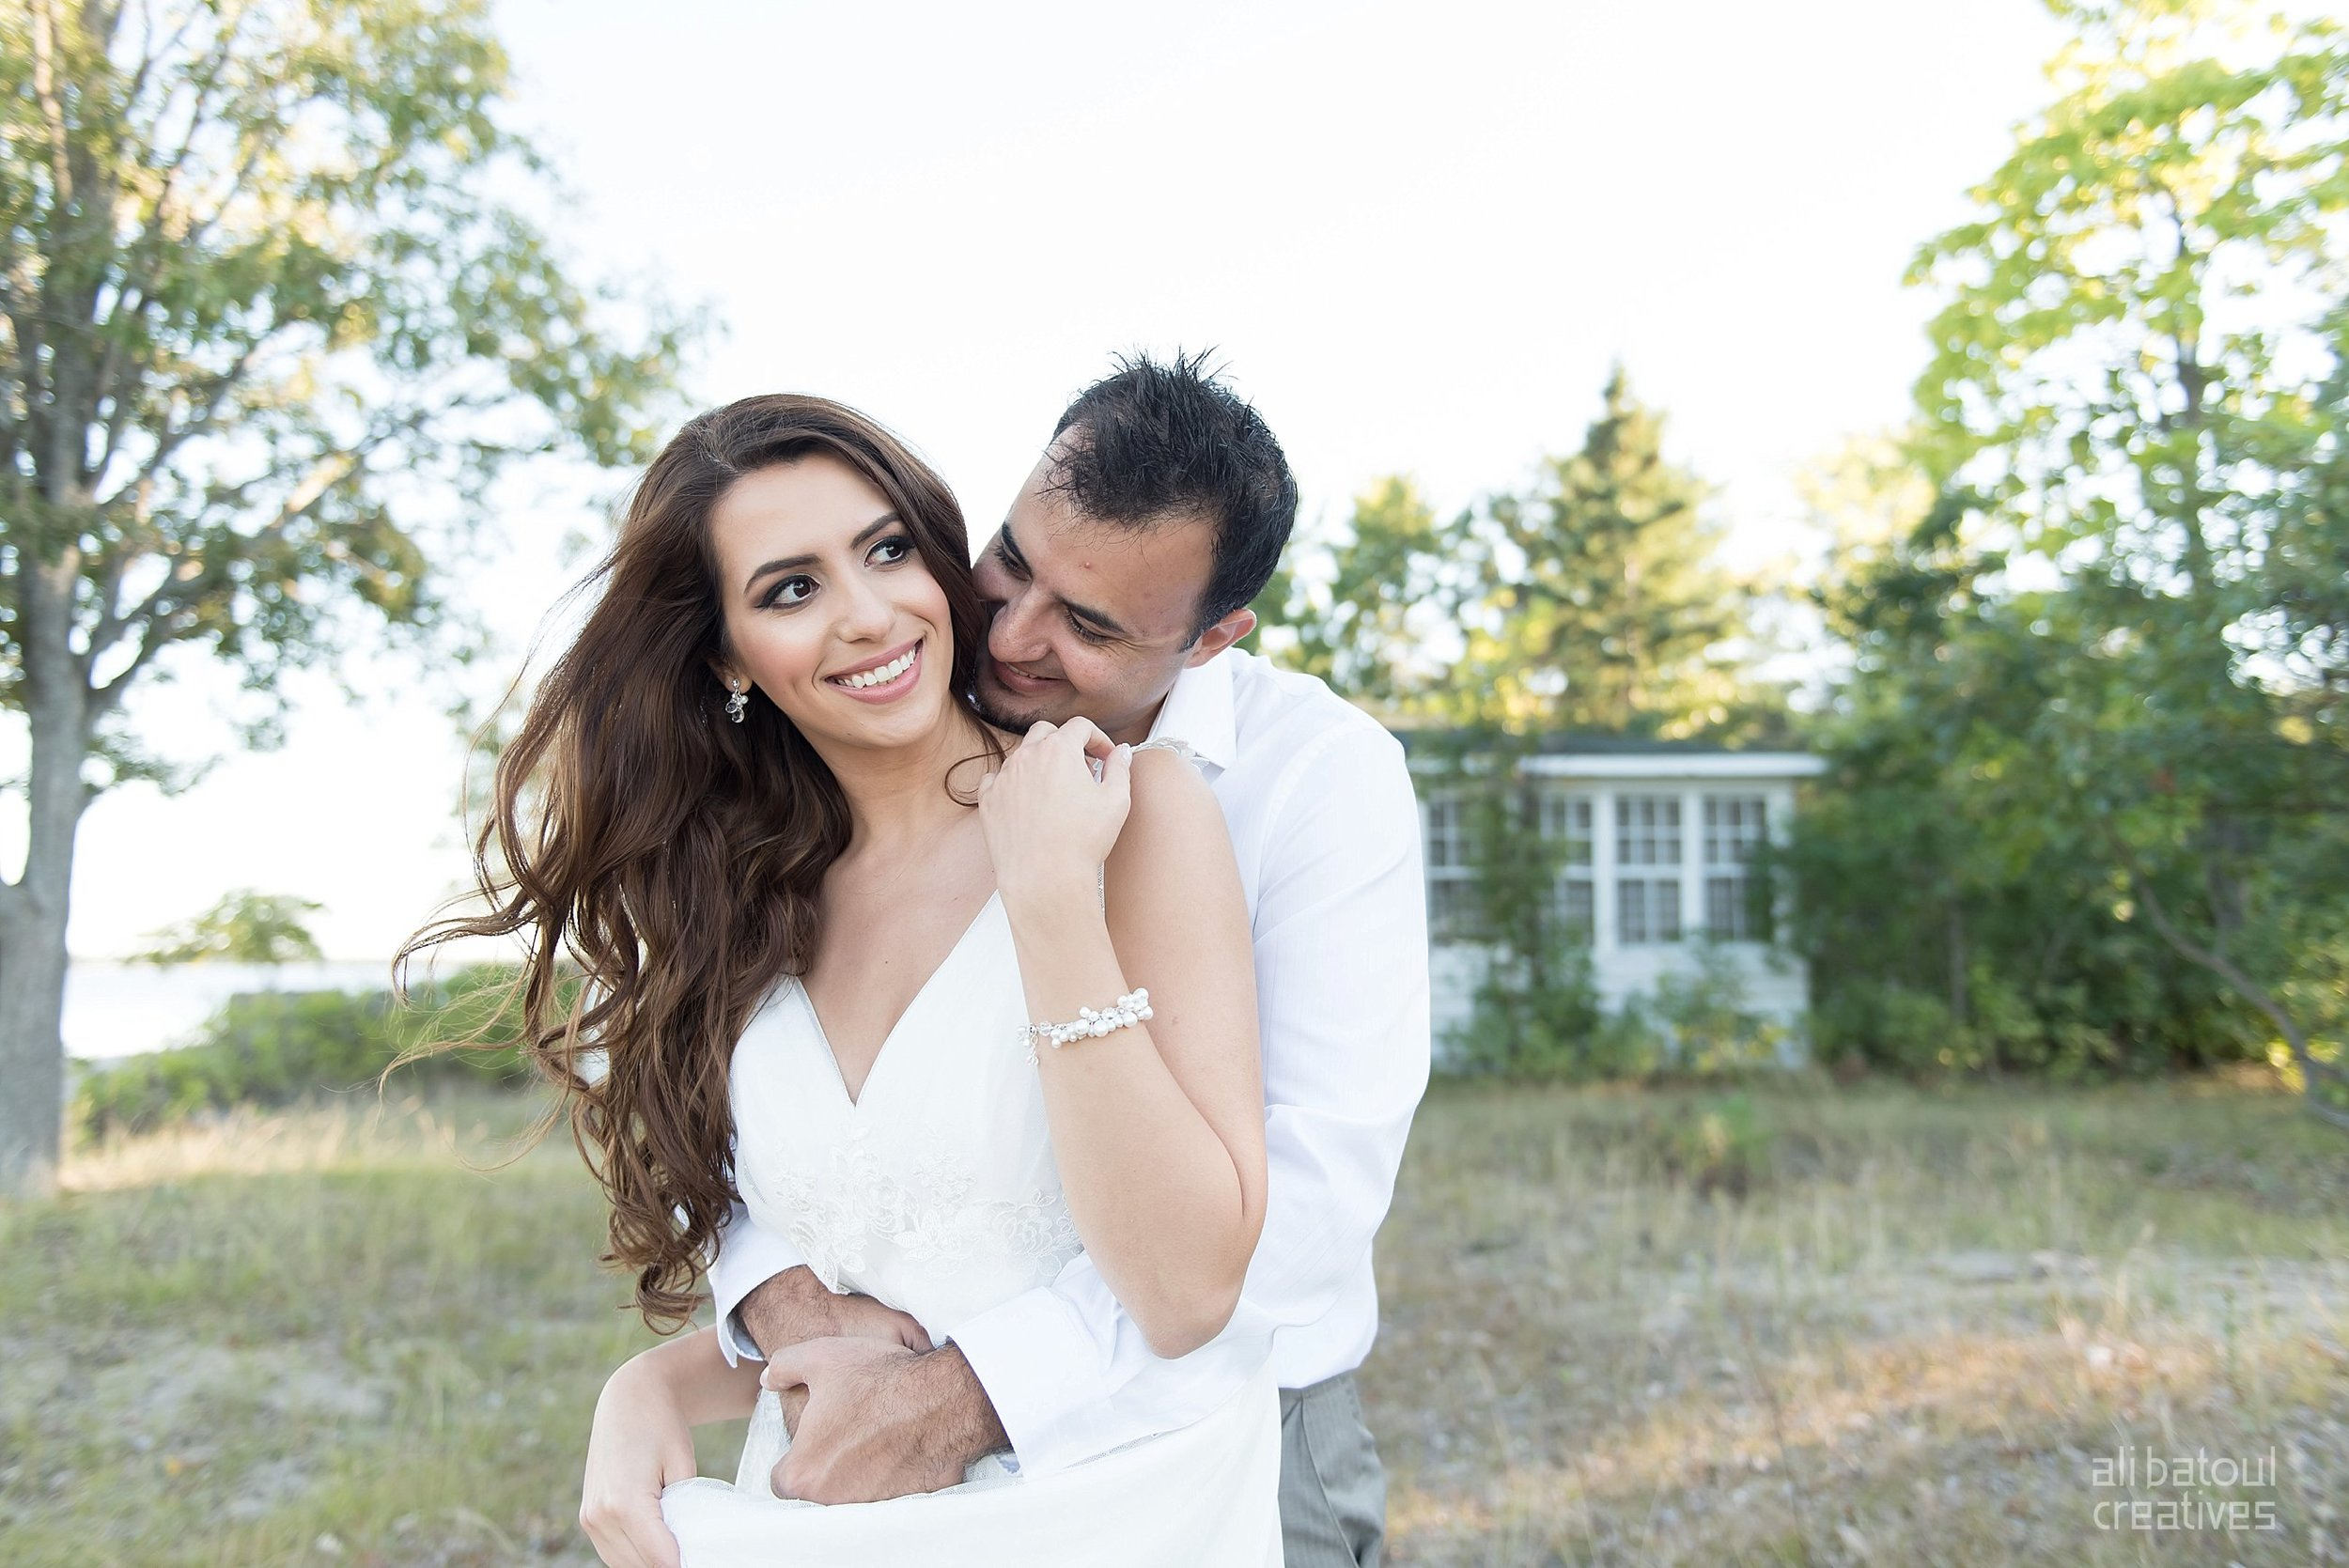 Alaa + Jad - Ottawa Beach Bridal Shoot (Ali Batoul Creatives)-66_Stomped.jpg